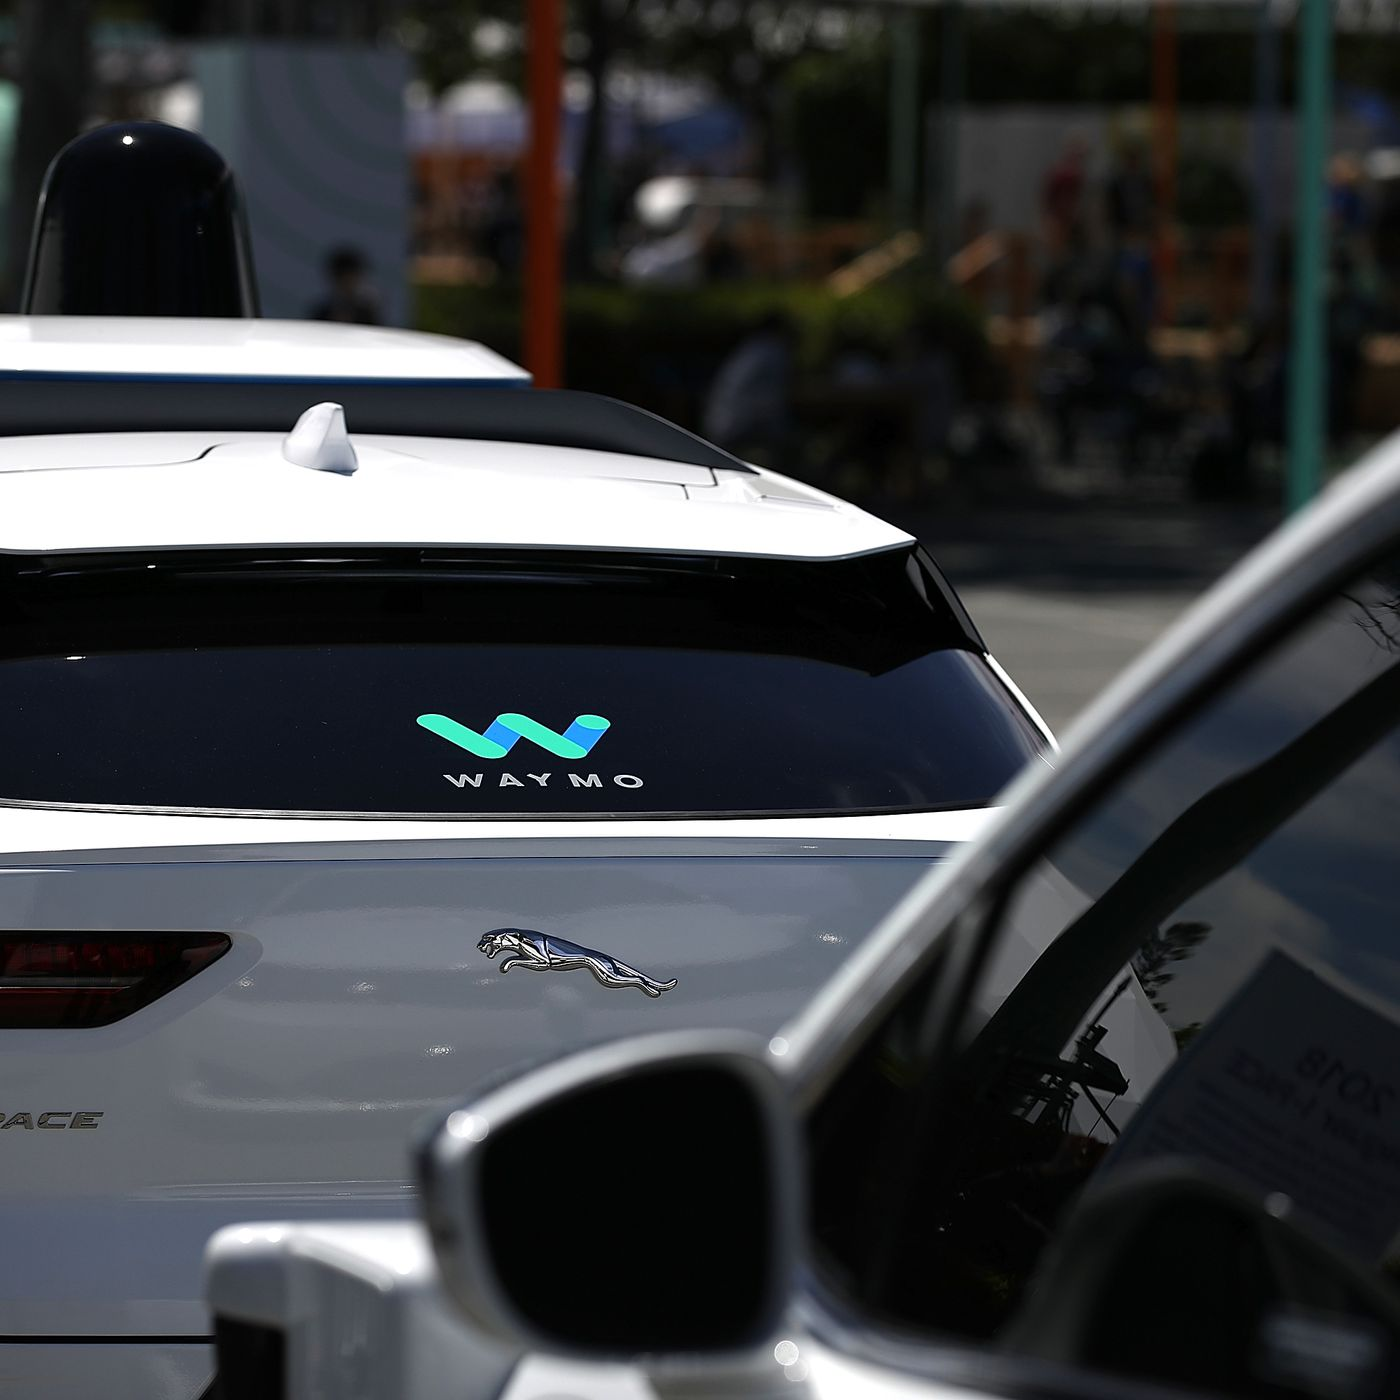 vox.com - Kelsey Piper - This is the most important moral question about self-driving cars